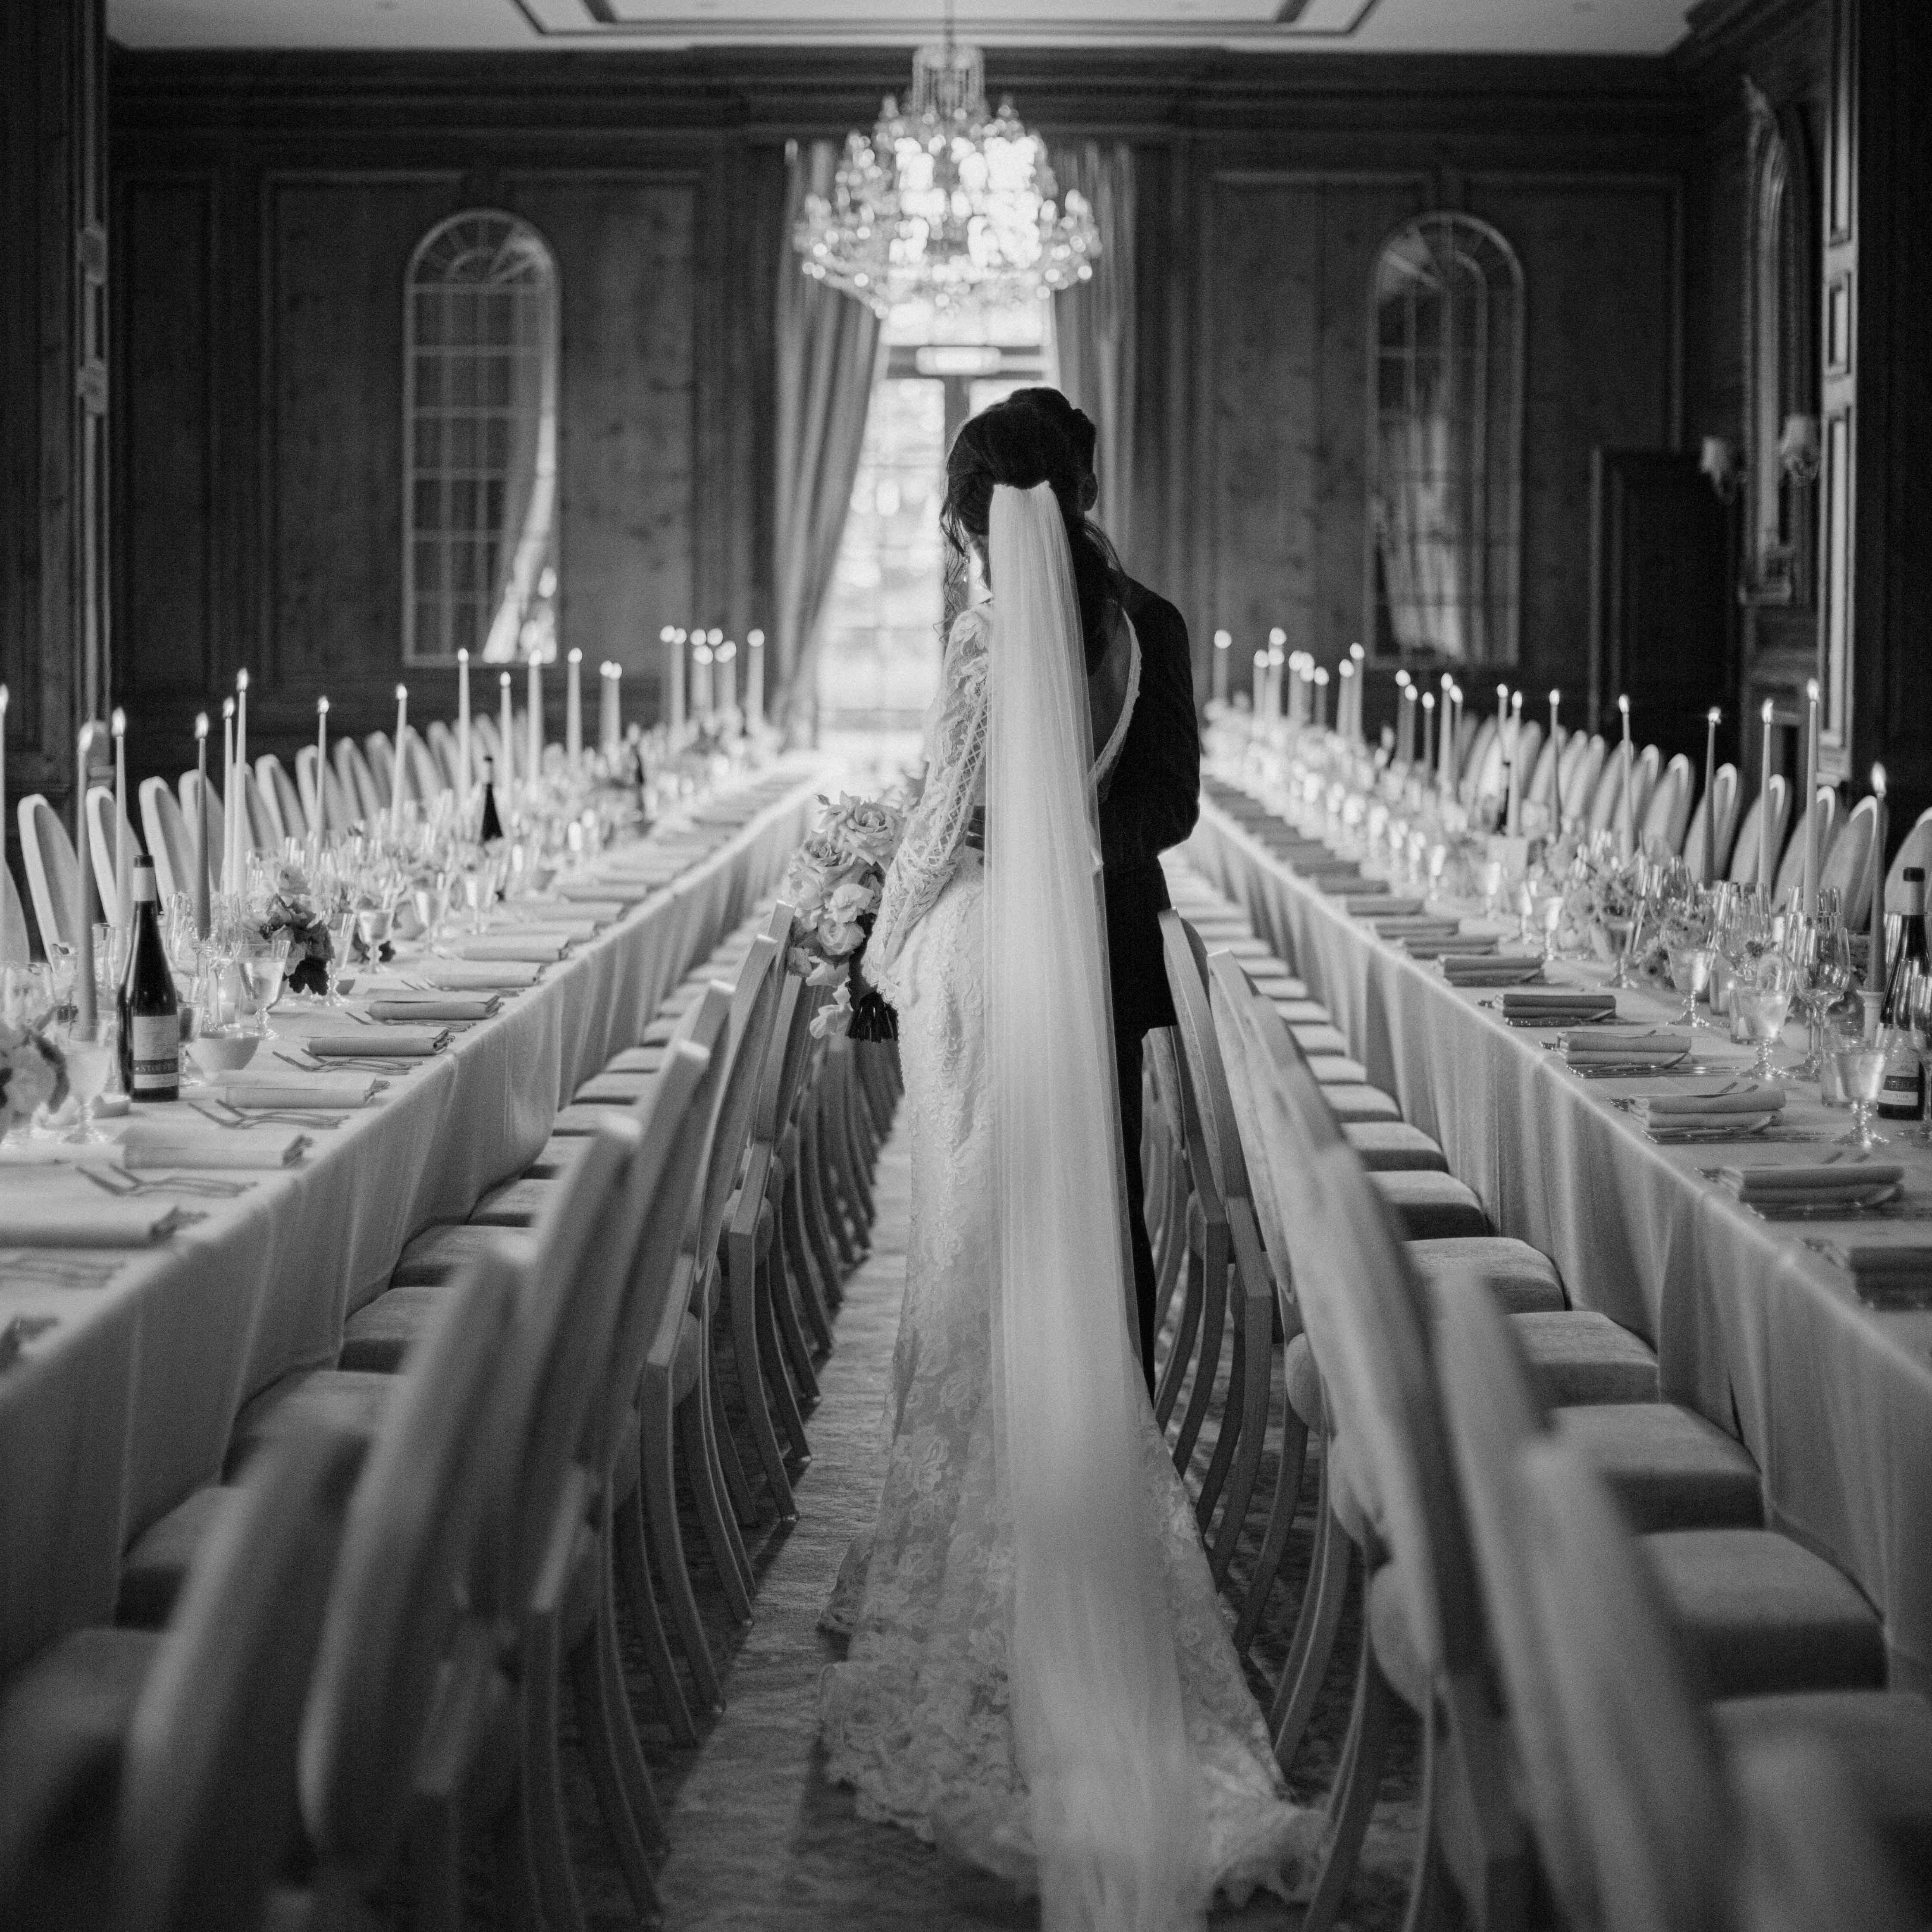 The bride at dinner tables